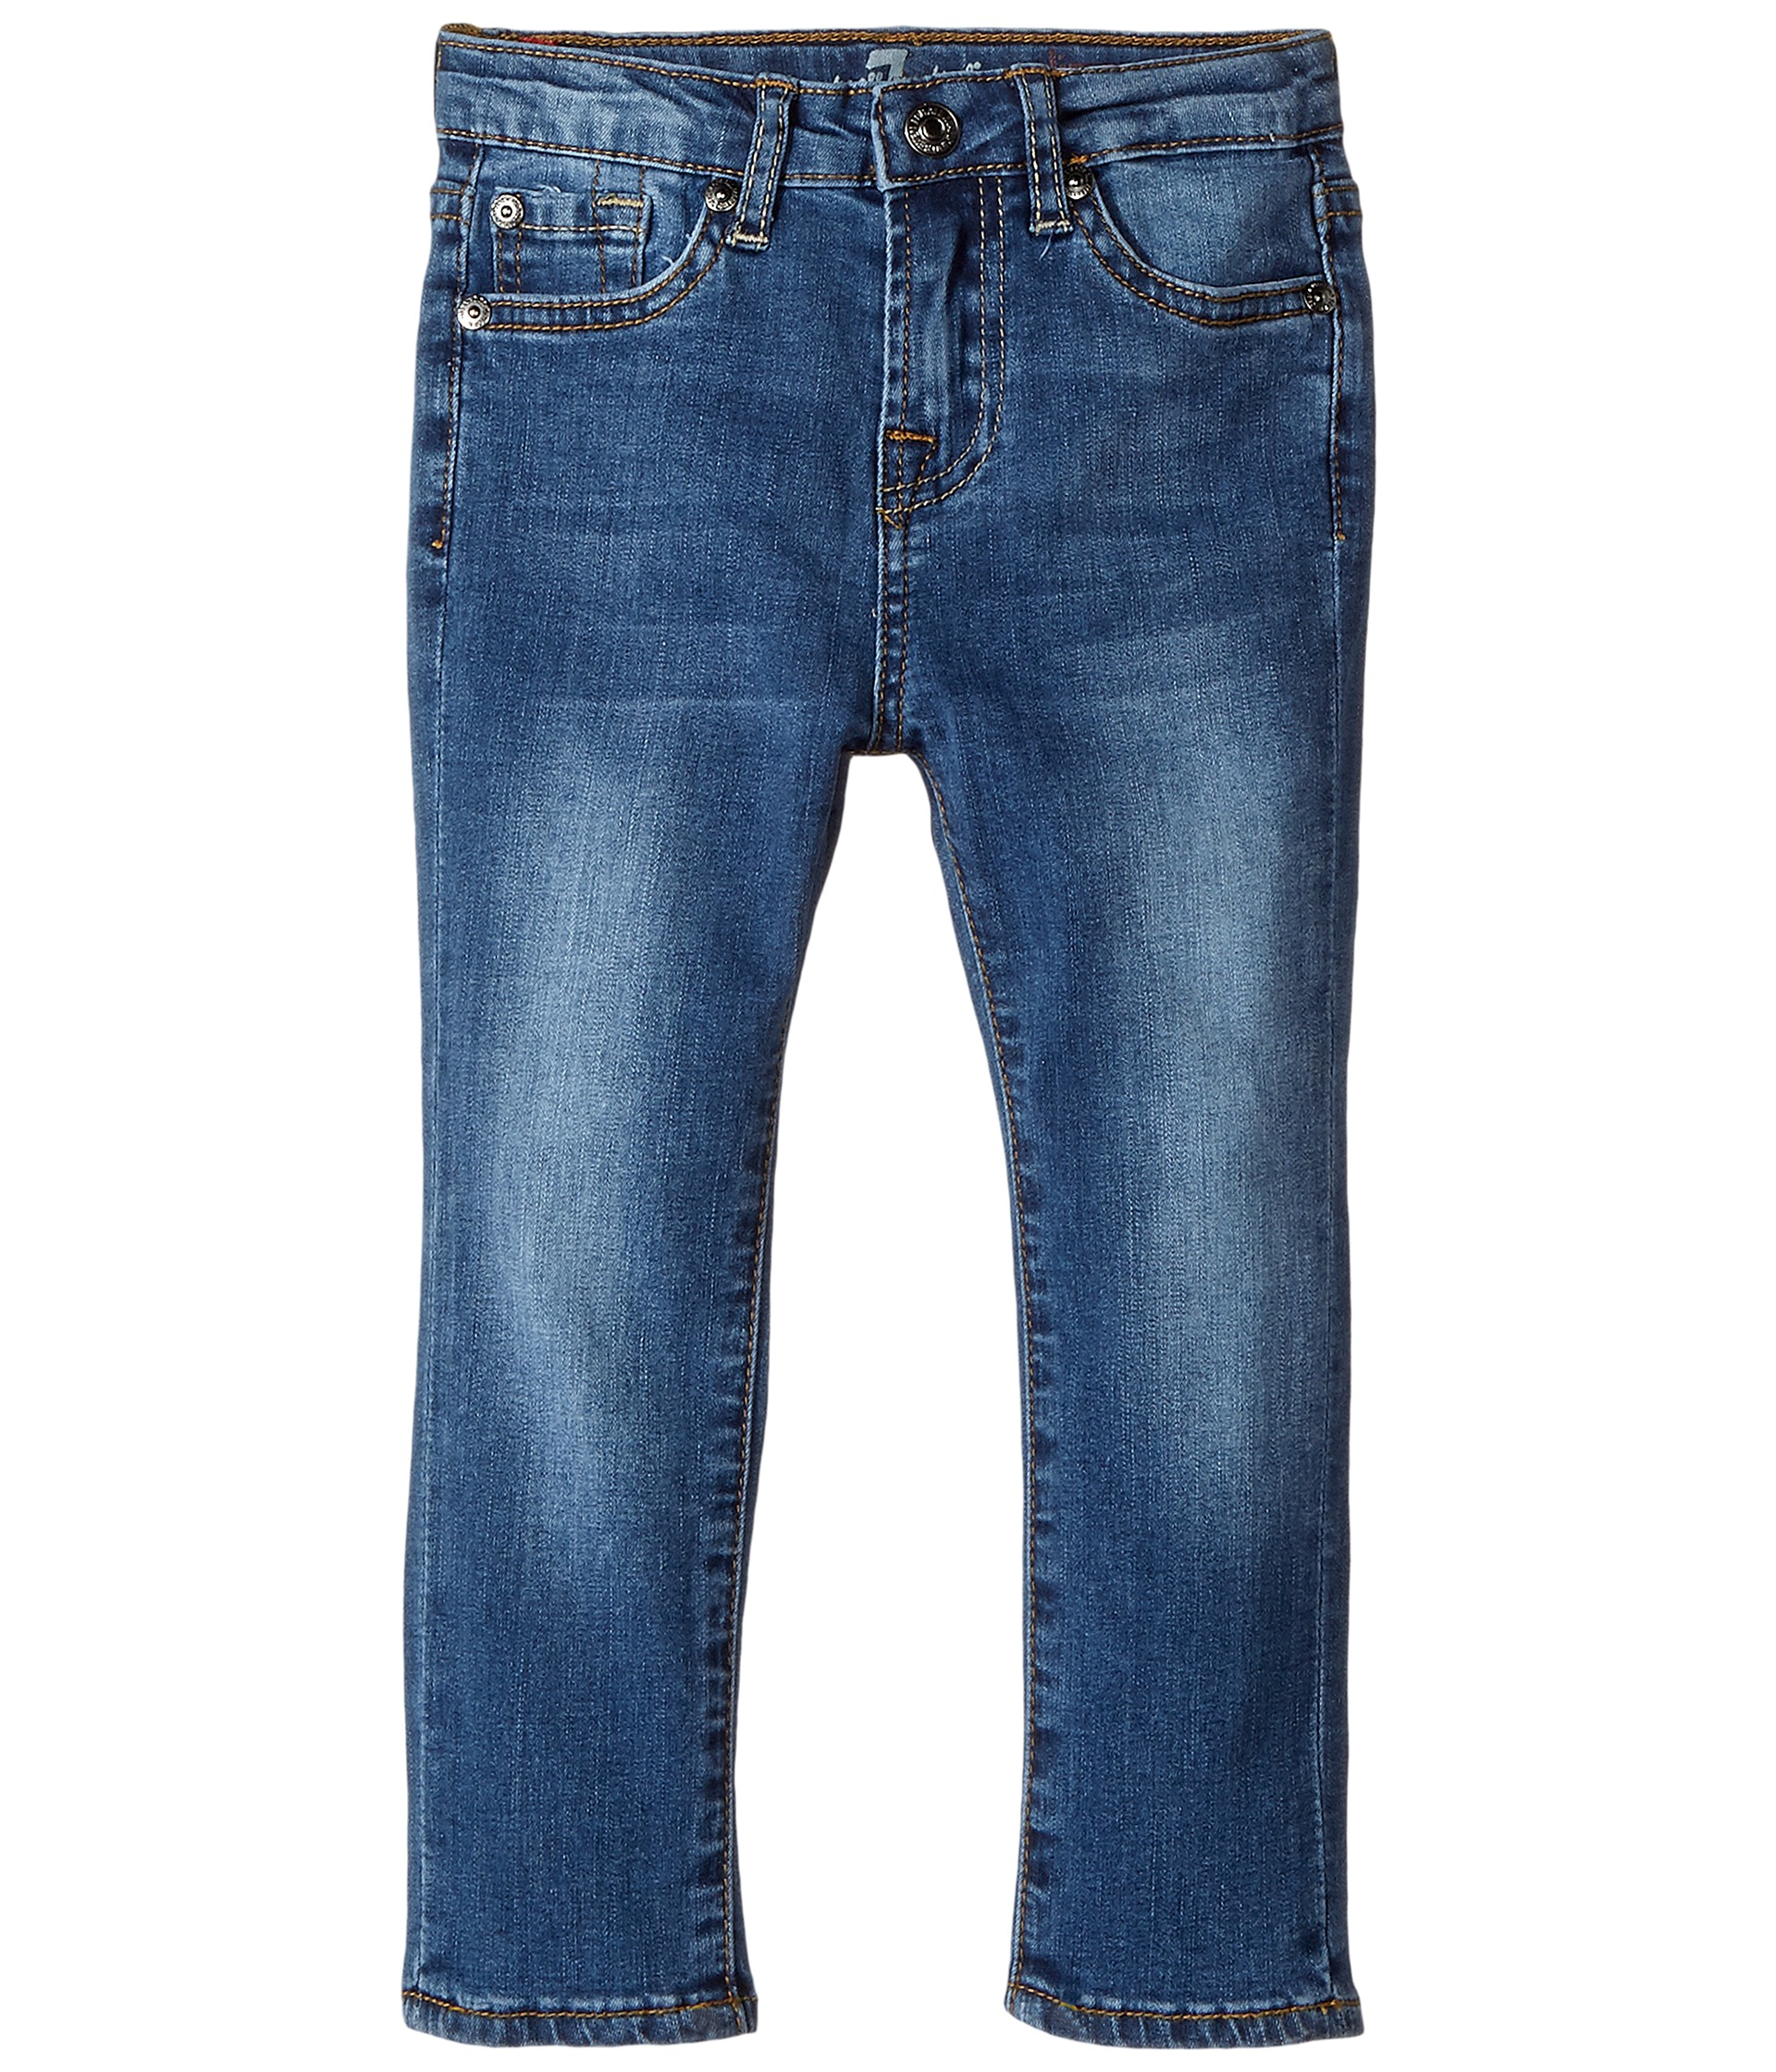 Find great deals on eBay for toddler seven jeans. Shop with confidence. Skip to main content. eBay: 7 For All Mankind Girls Jeans Size 24 Month Toddler Straight Medium Wash. 7 For All Mankind · Size Months · Jeans. Baby toddler girls 7 for all mankind skinny jeans denim size 2 2t pant med wash.